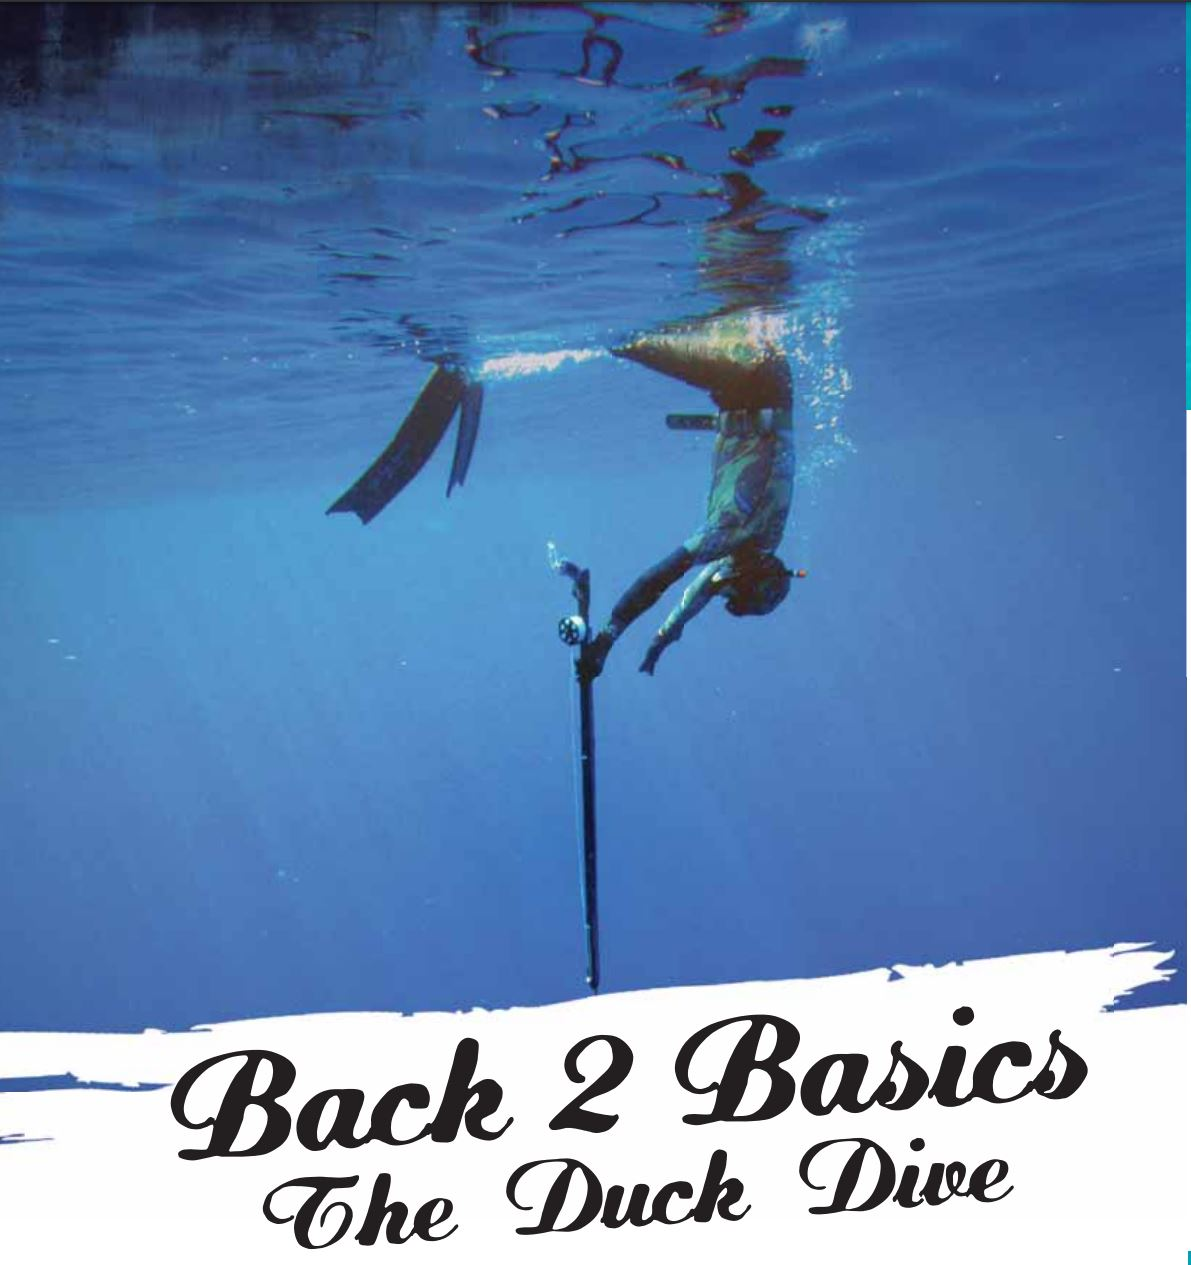 The Duck Dive